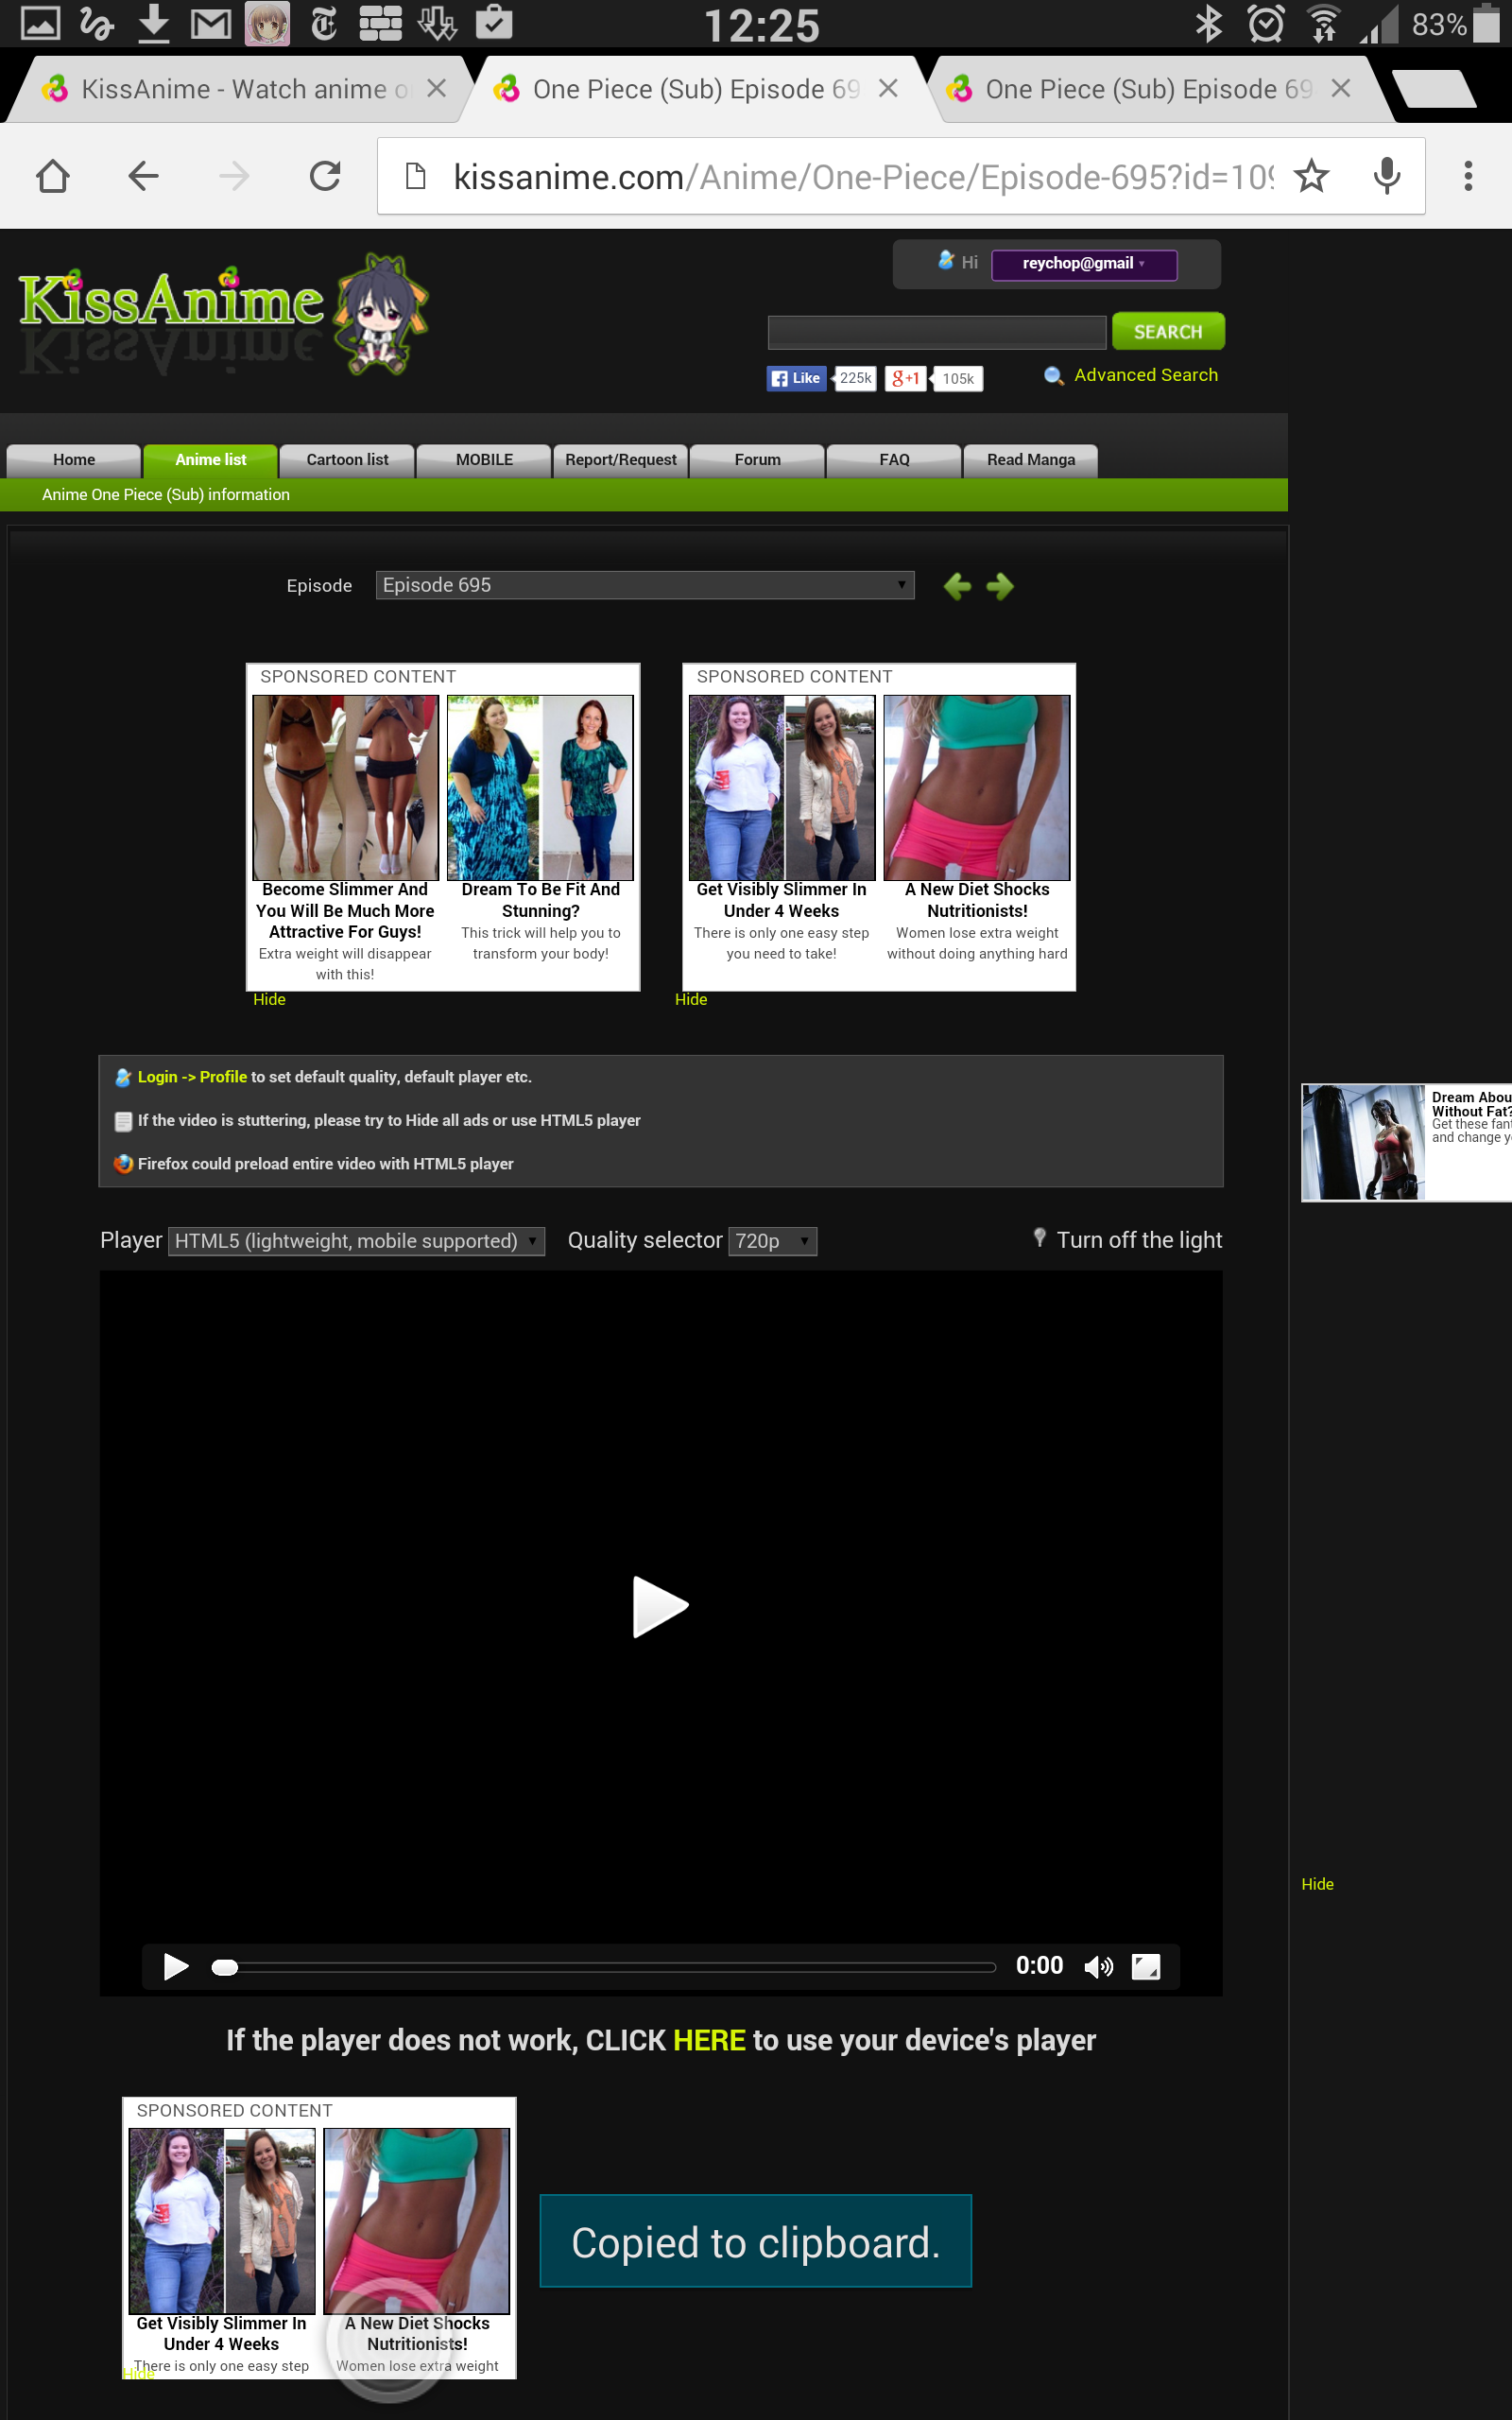 how to download video from kissanime on android